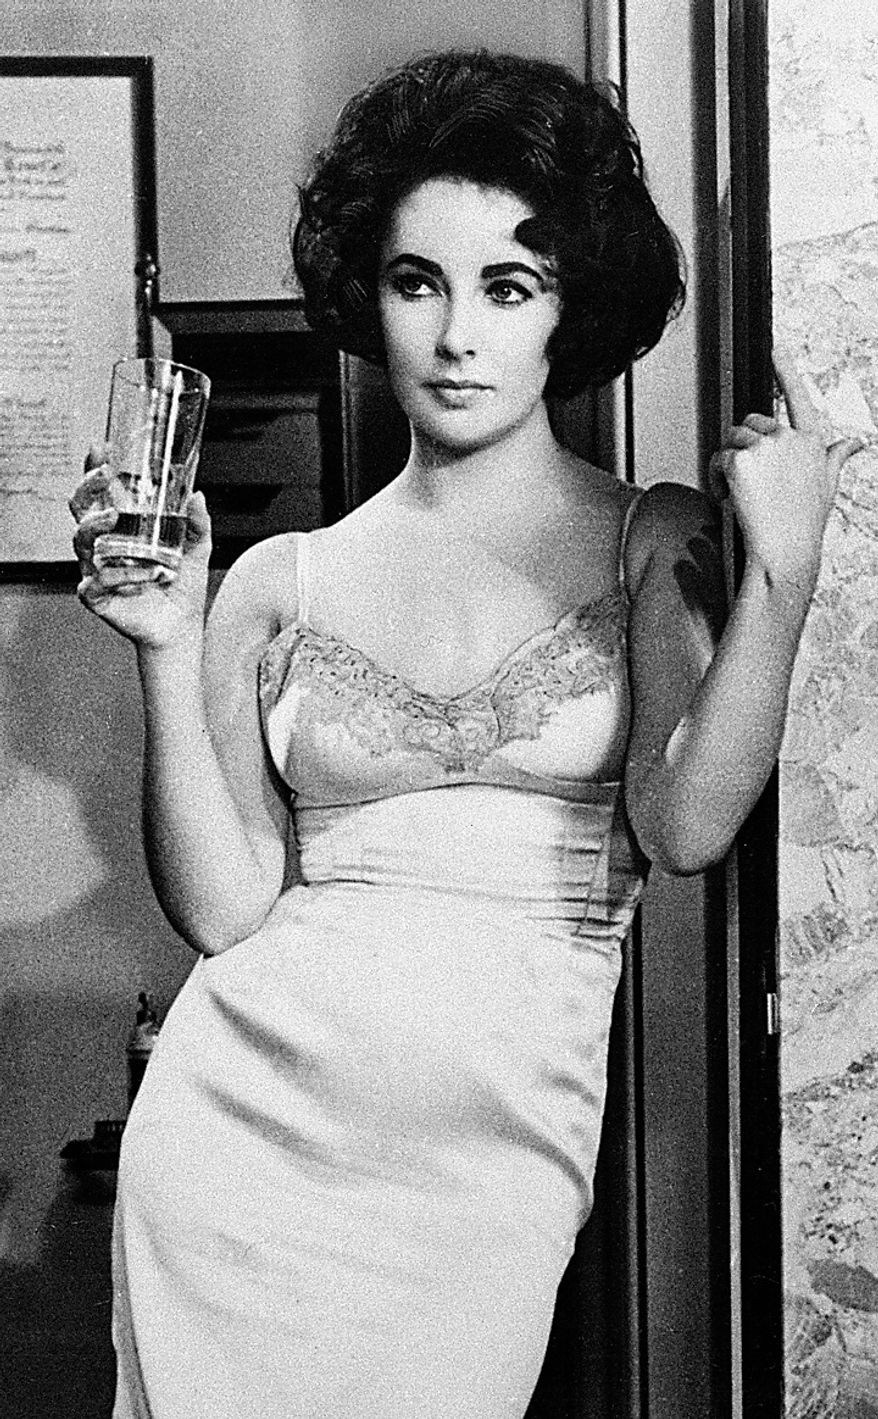 """Elizabeth Taylor won a best-actress Oscar for her work in the film """"Butterfield 8."""" (AP Photo/File)"""